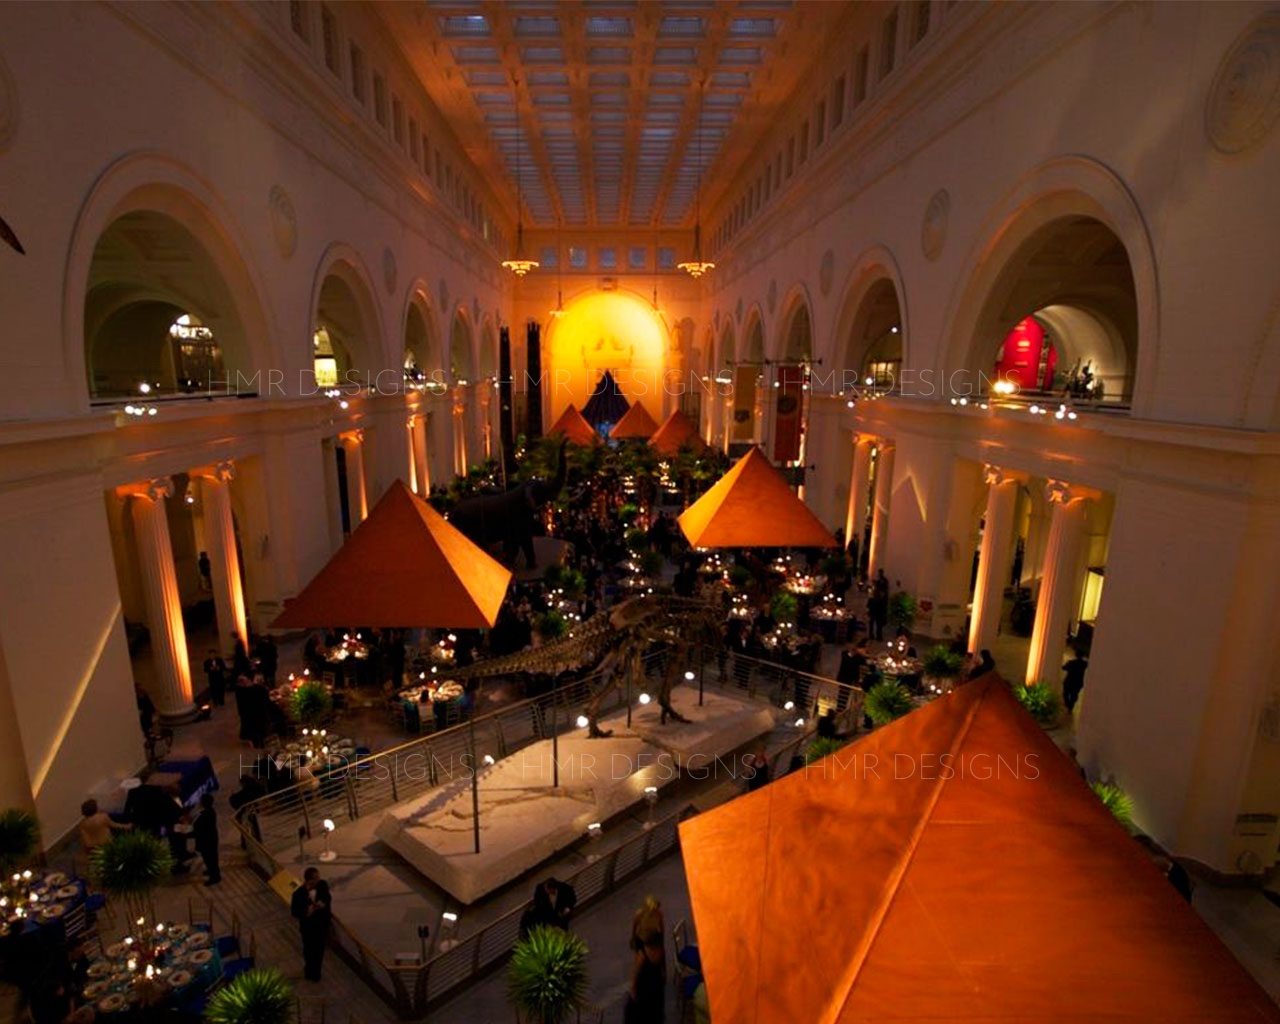 Taking Up Spaces: The Field Museum